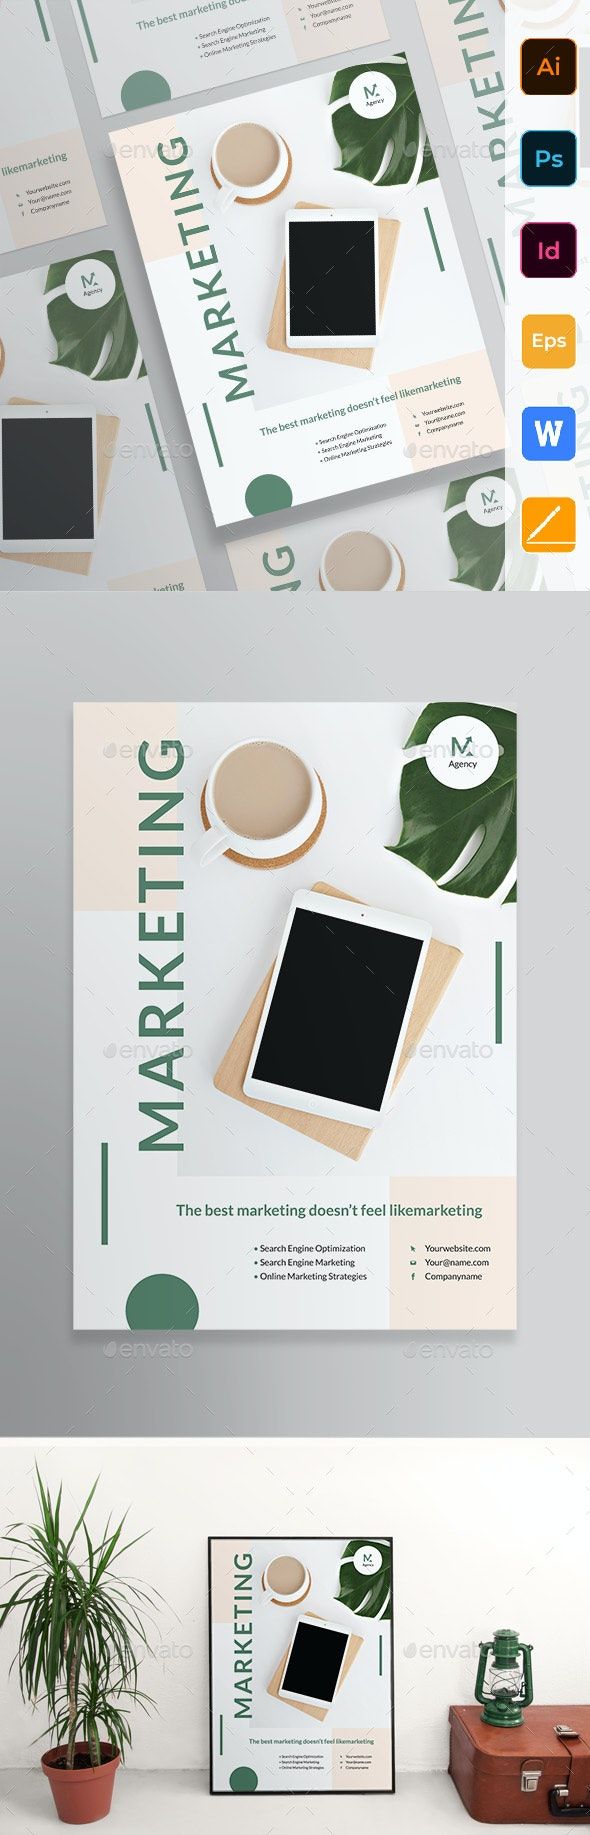 Marketing Agency Poster - Corporate Flyers